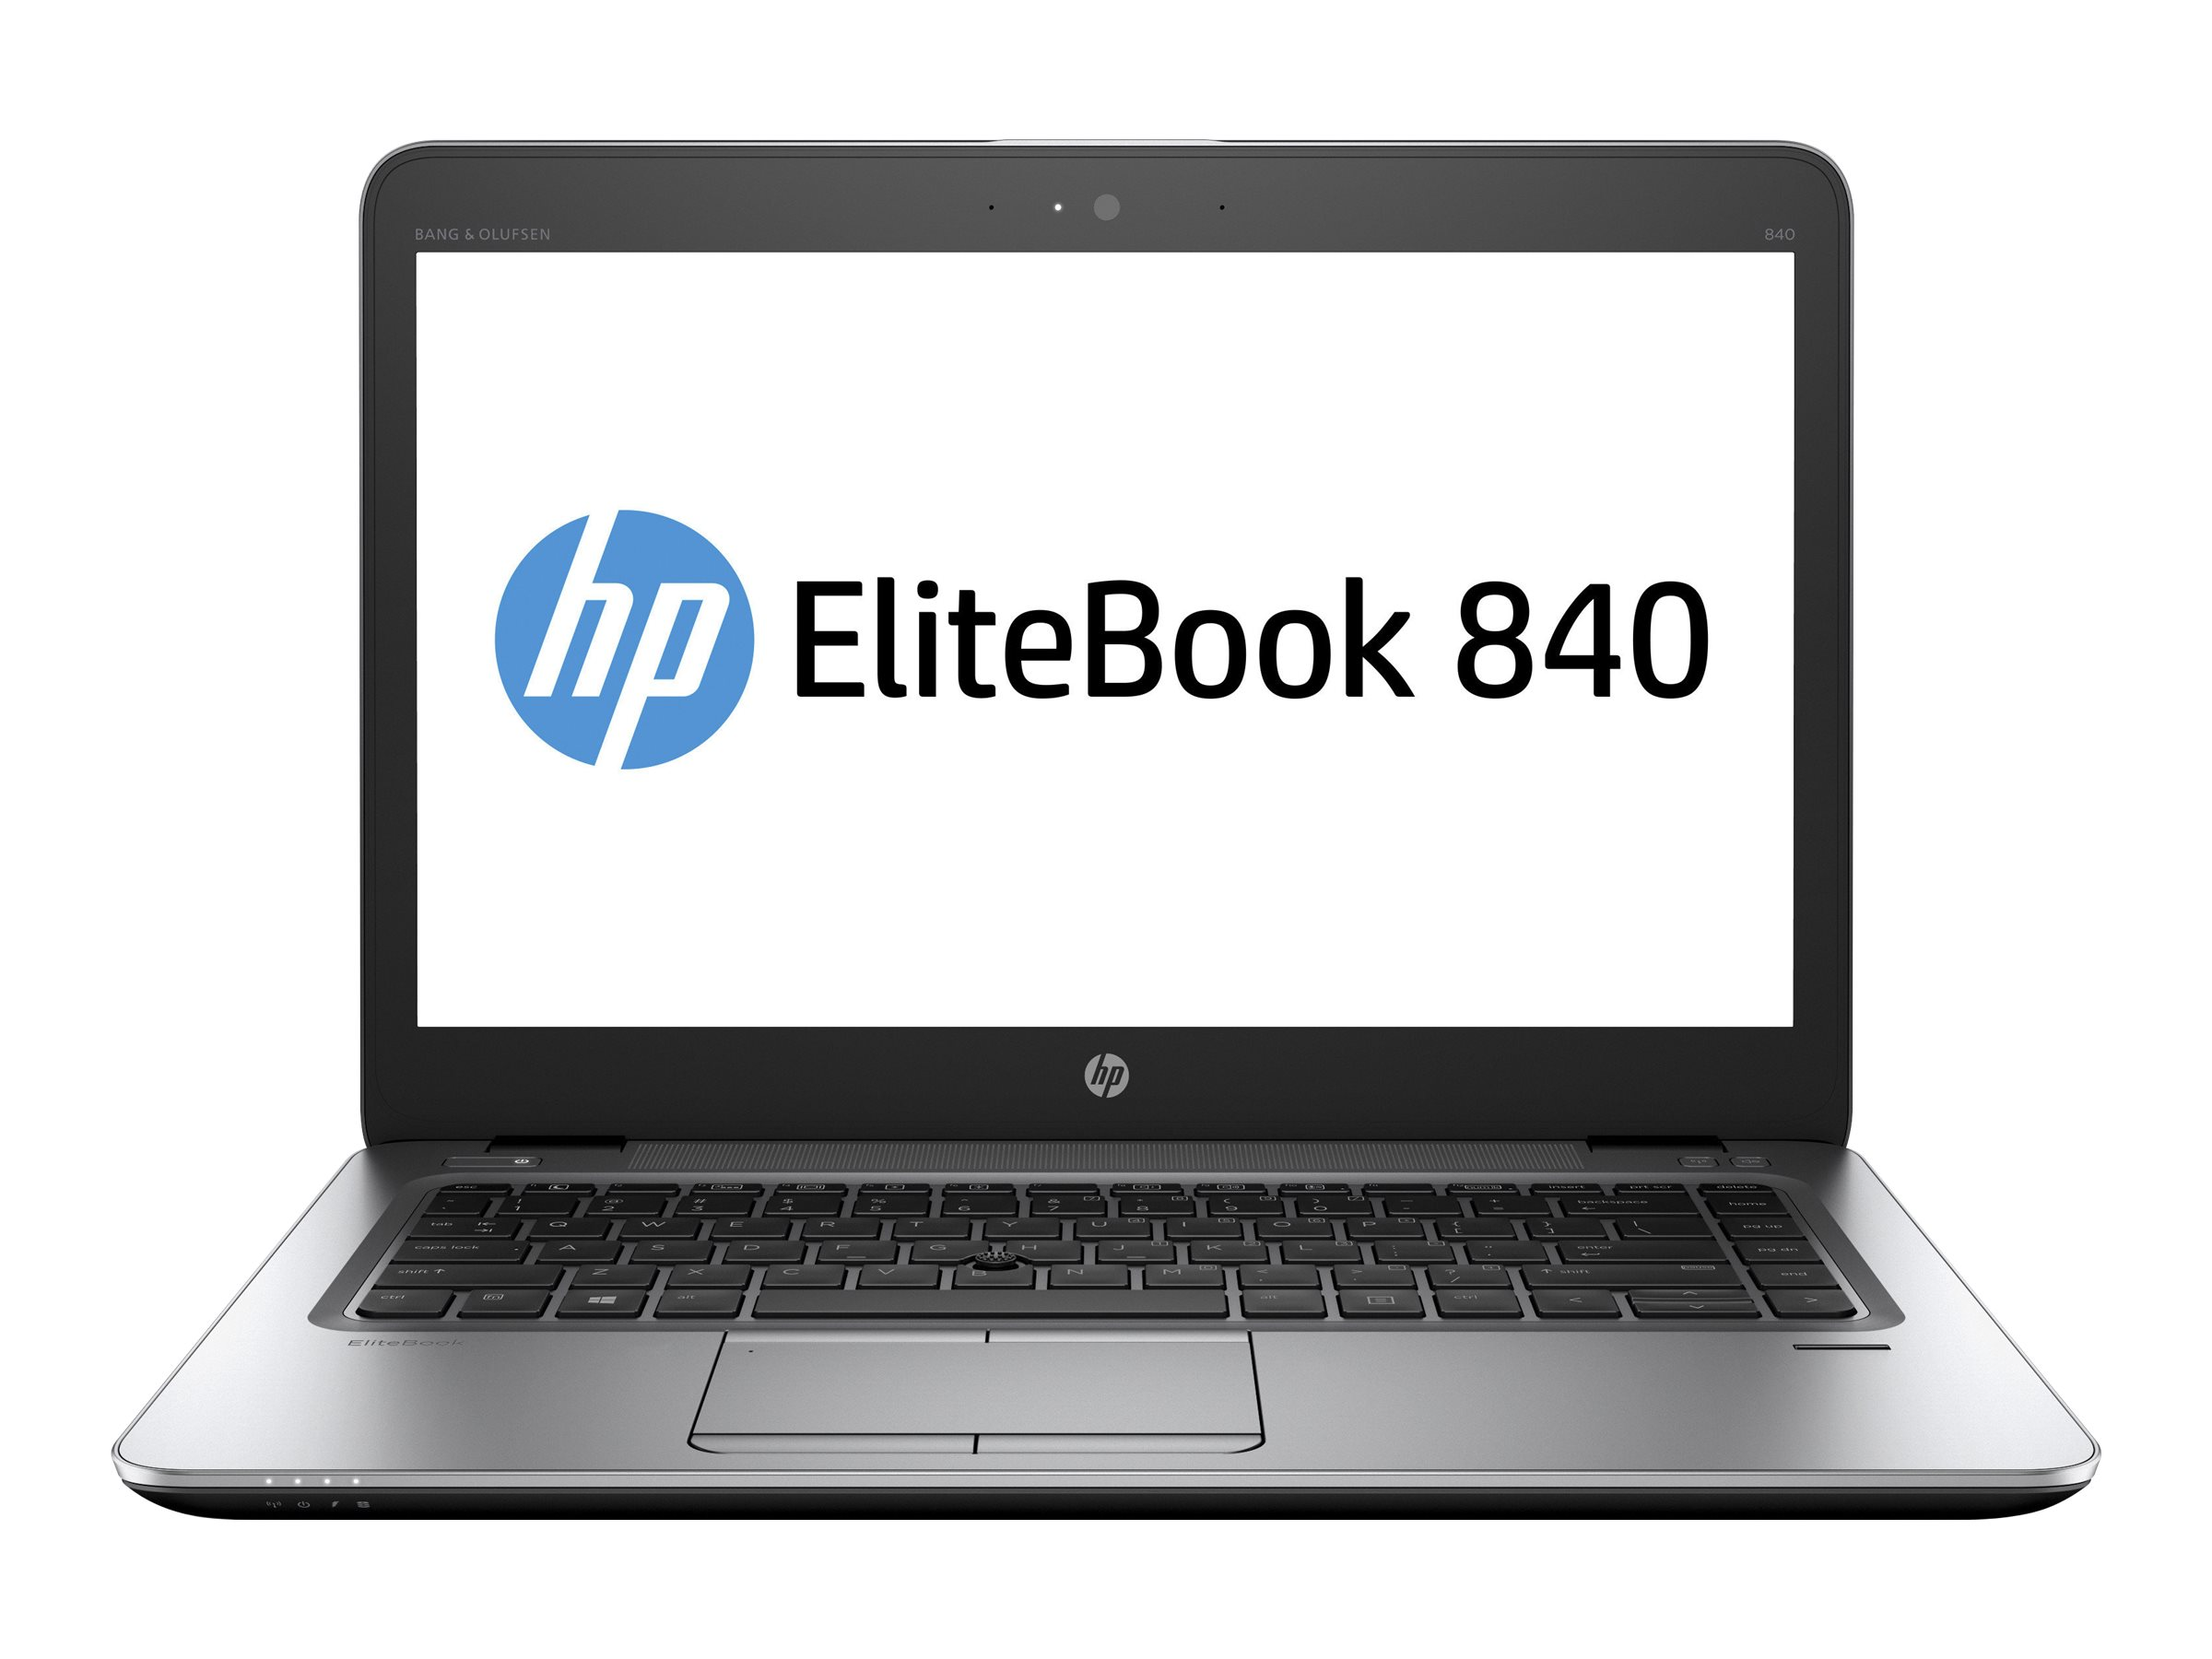 "HP EliteBook 840 G3 35,5cm (14"") i5-6300U 8GB 256G"